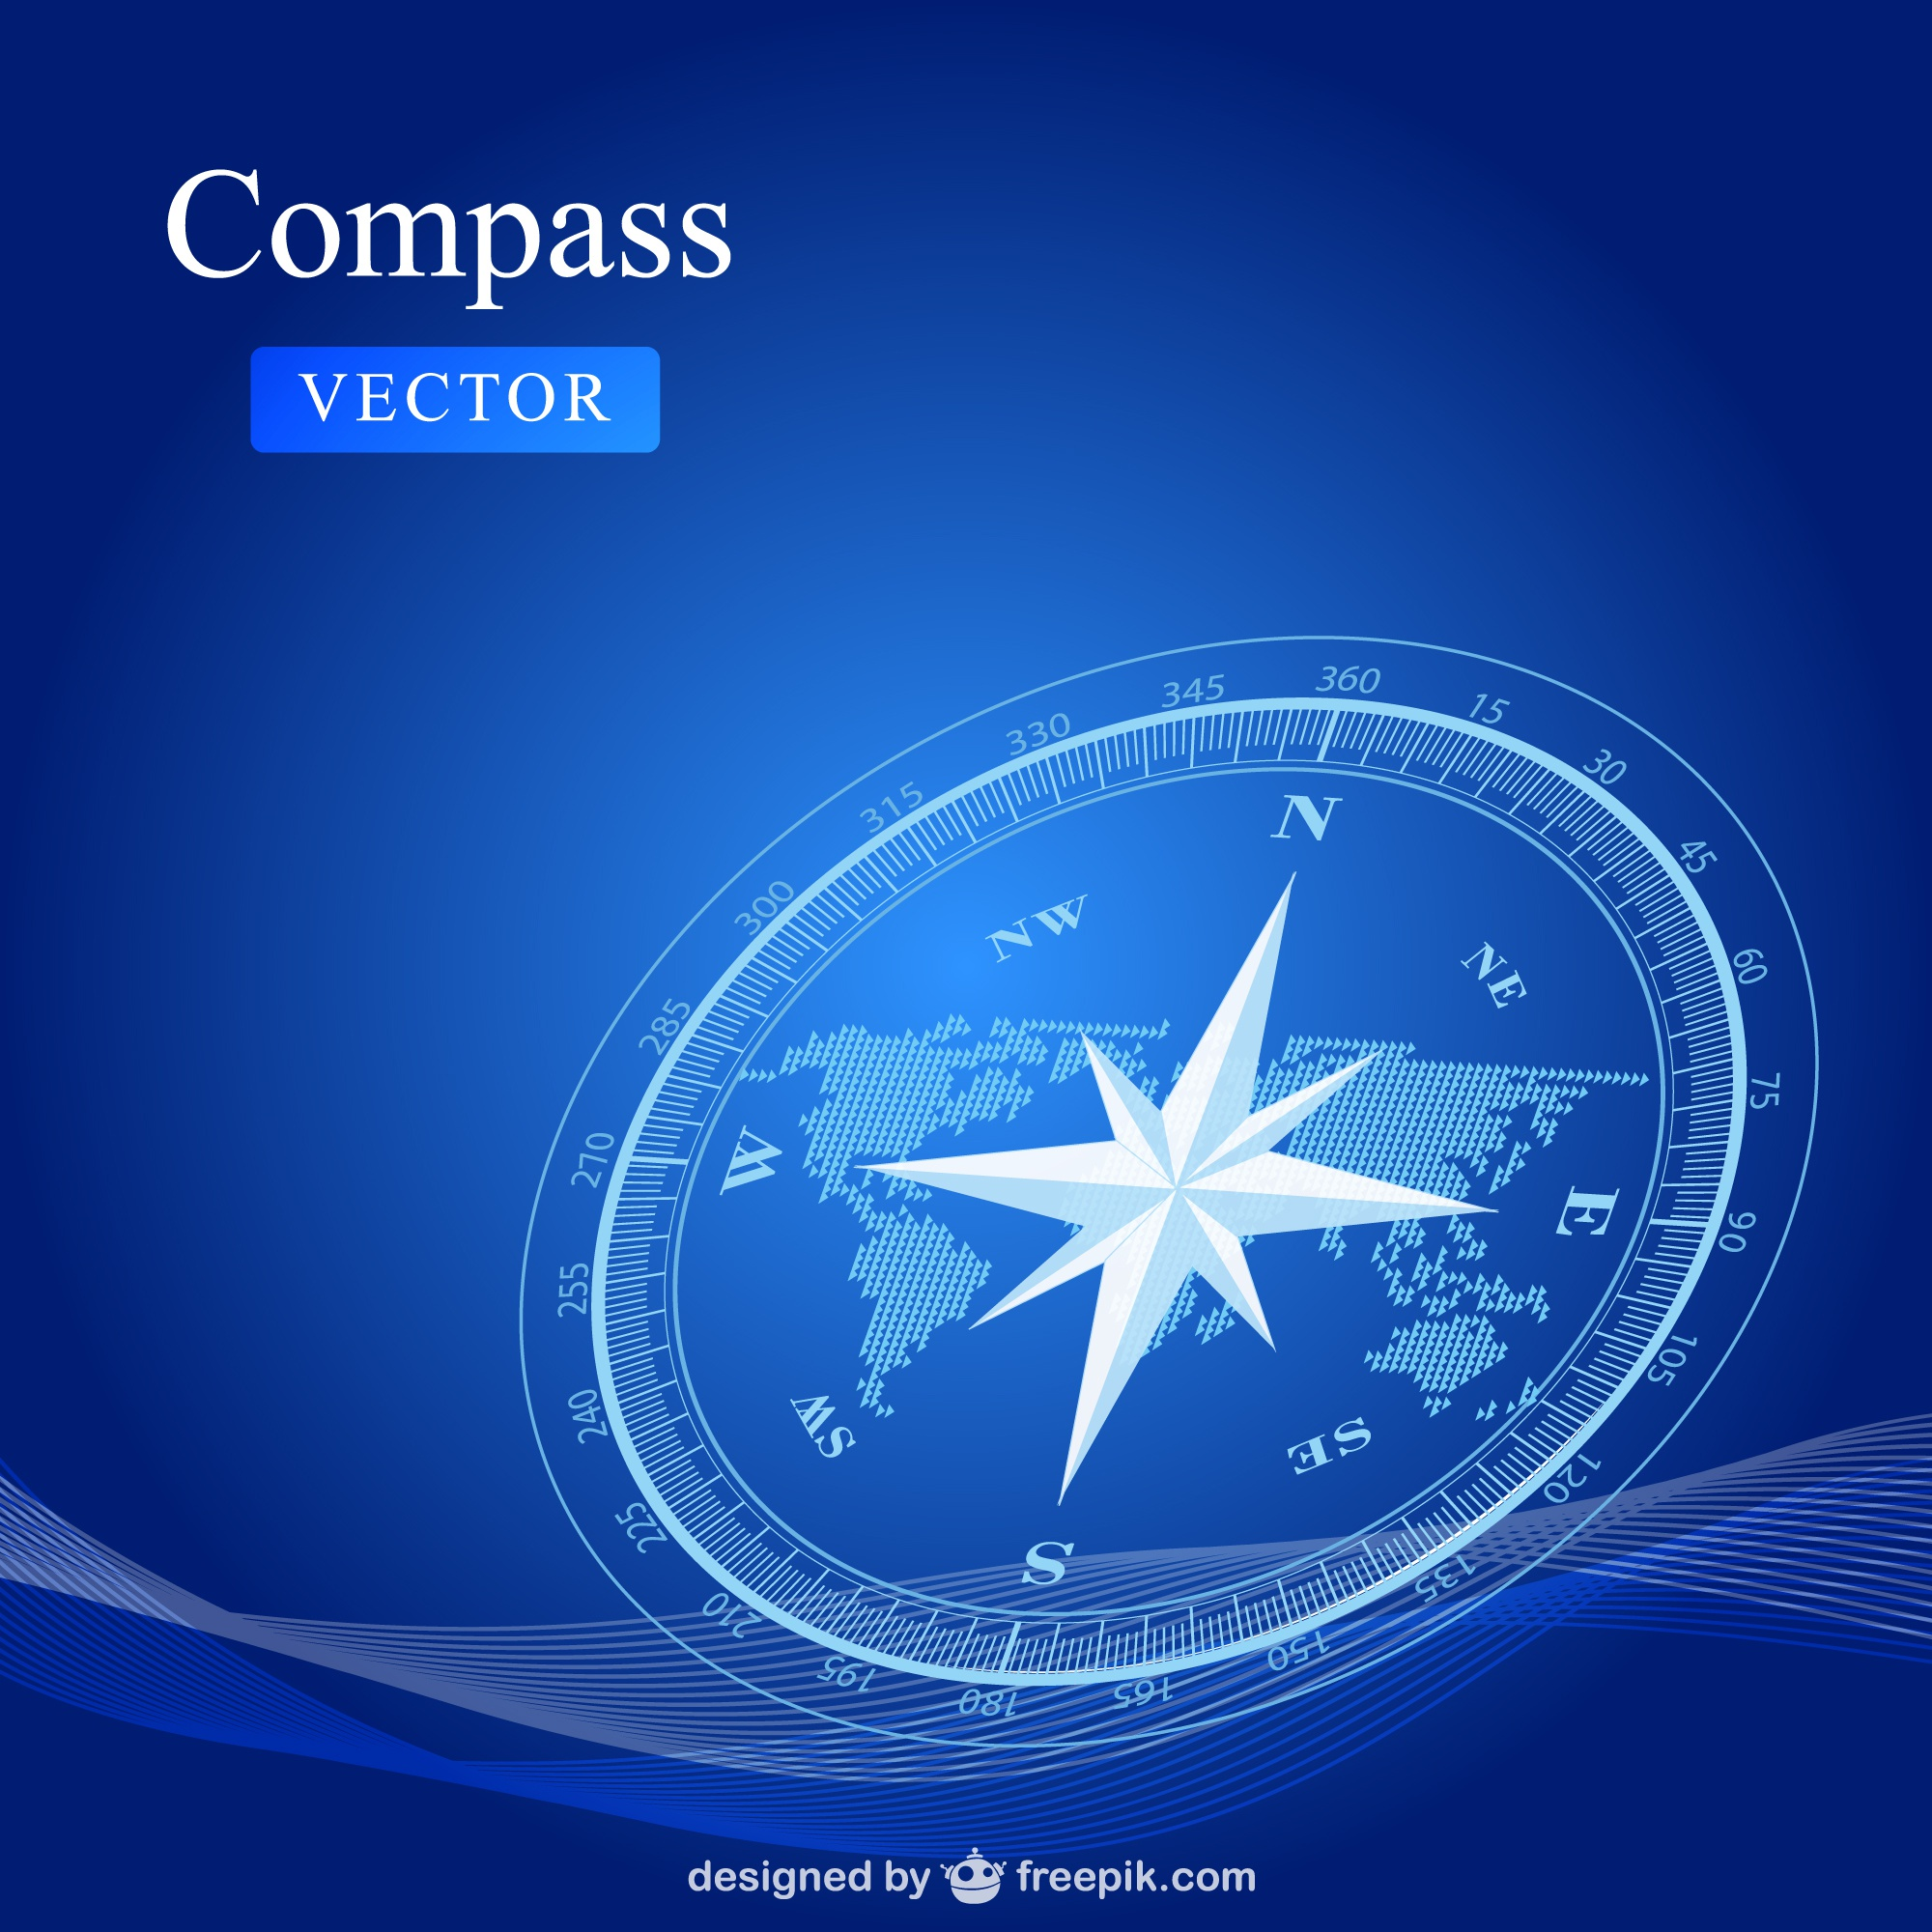 Compass vector free